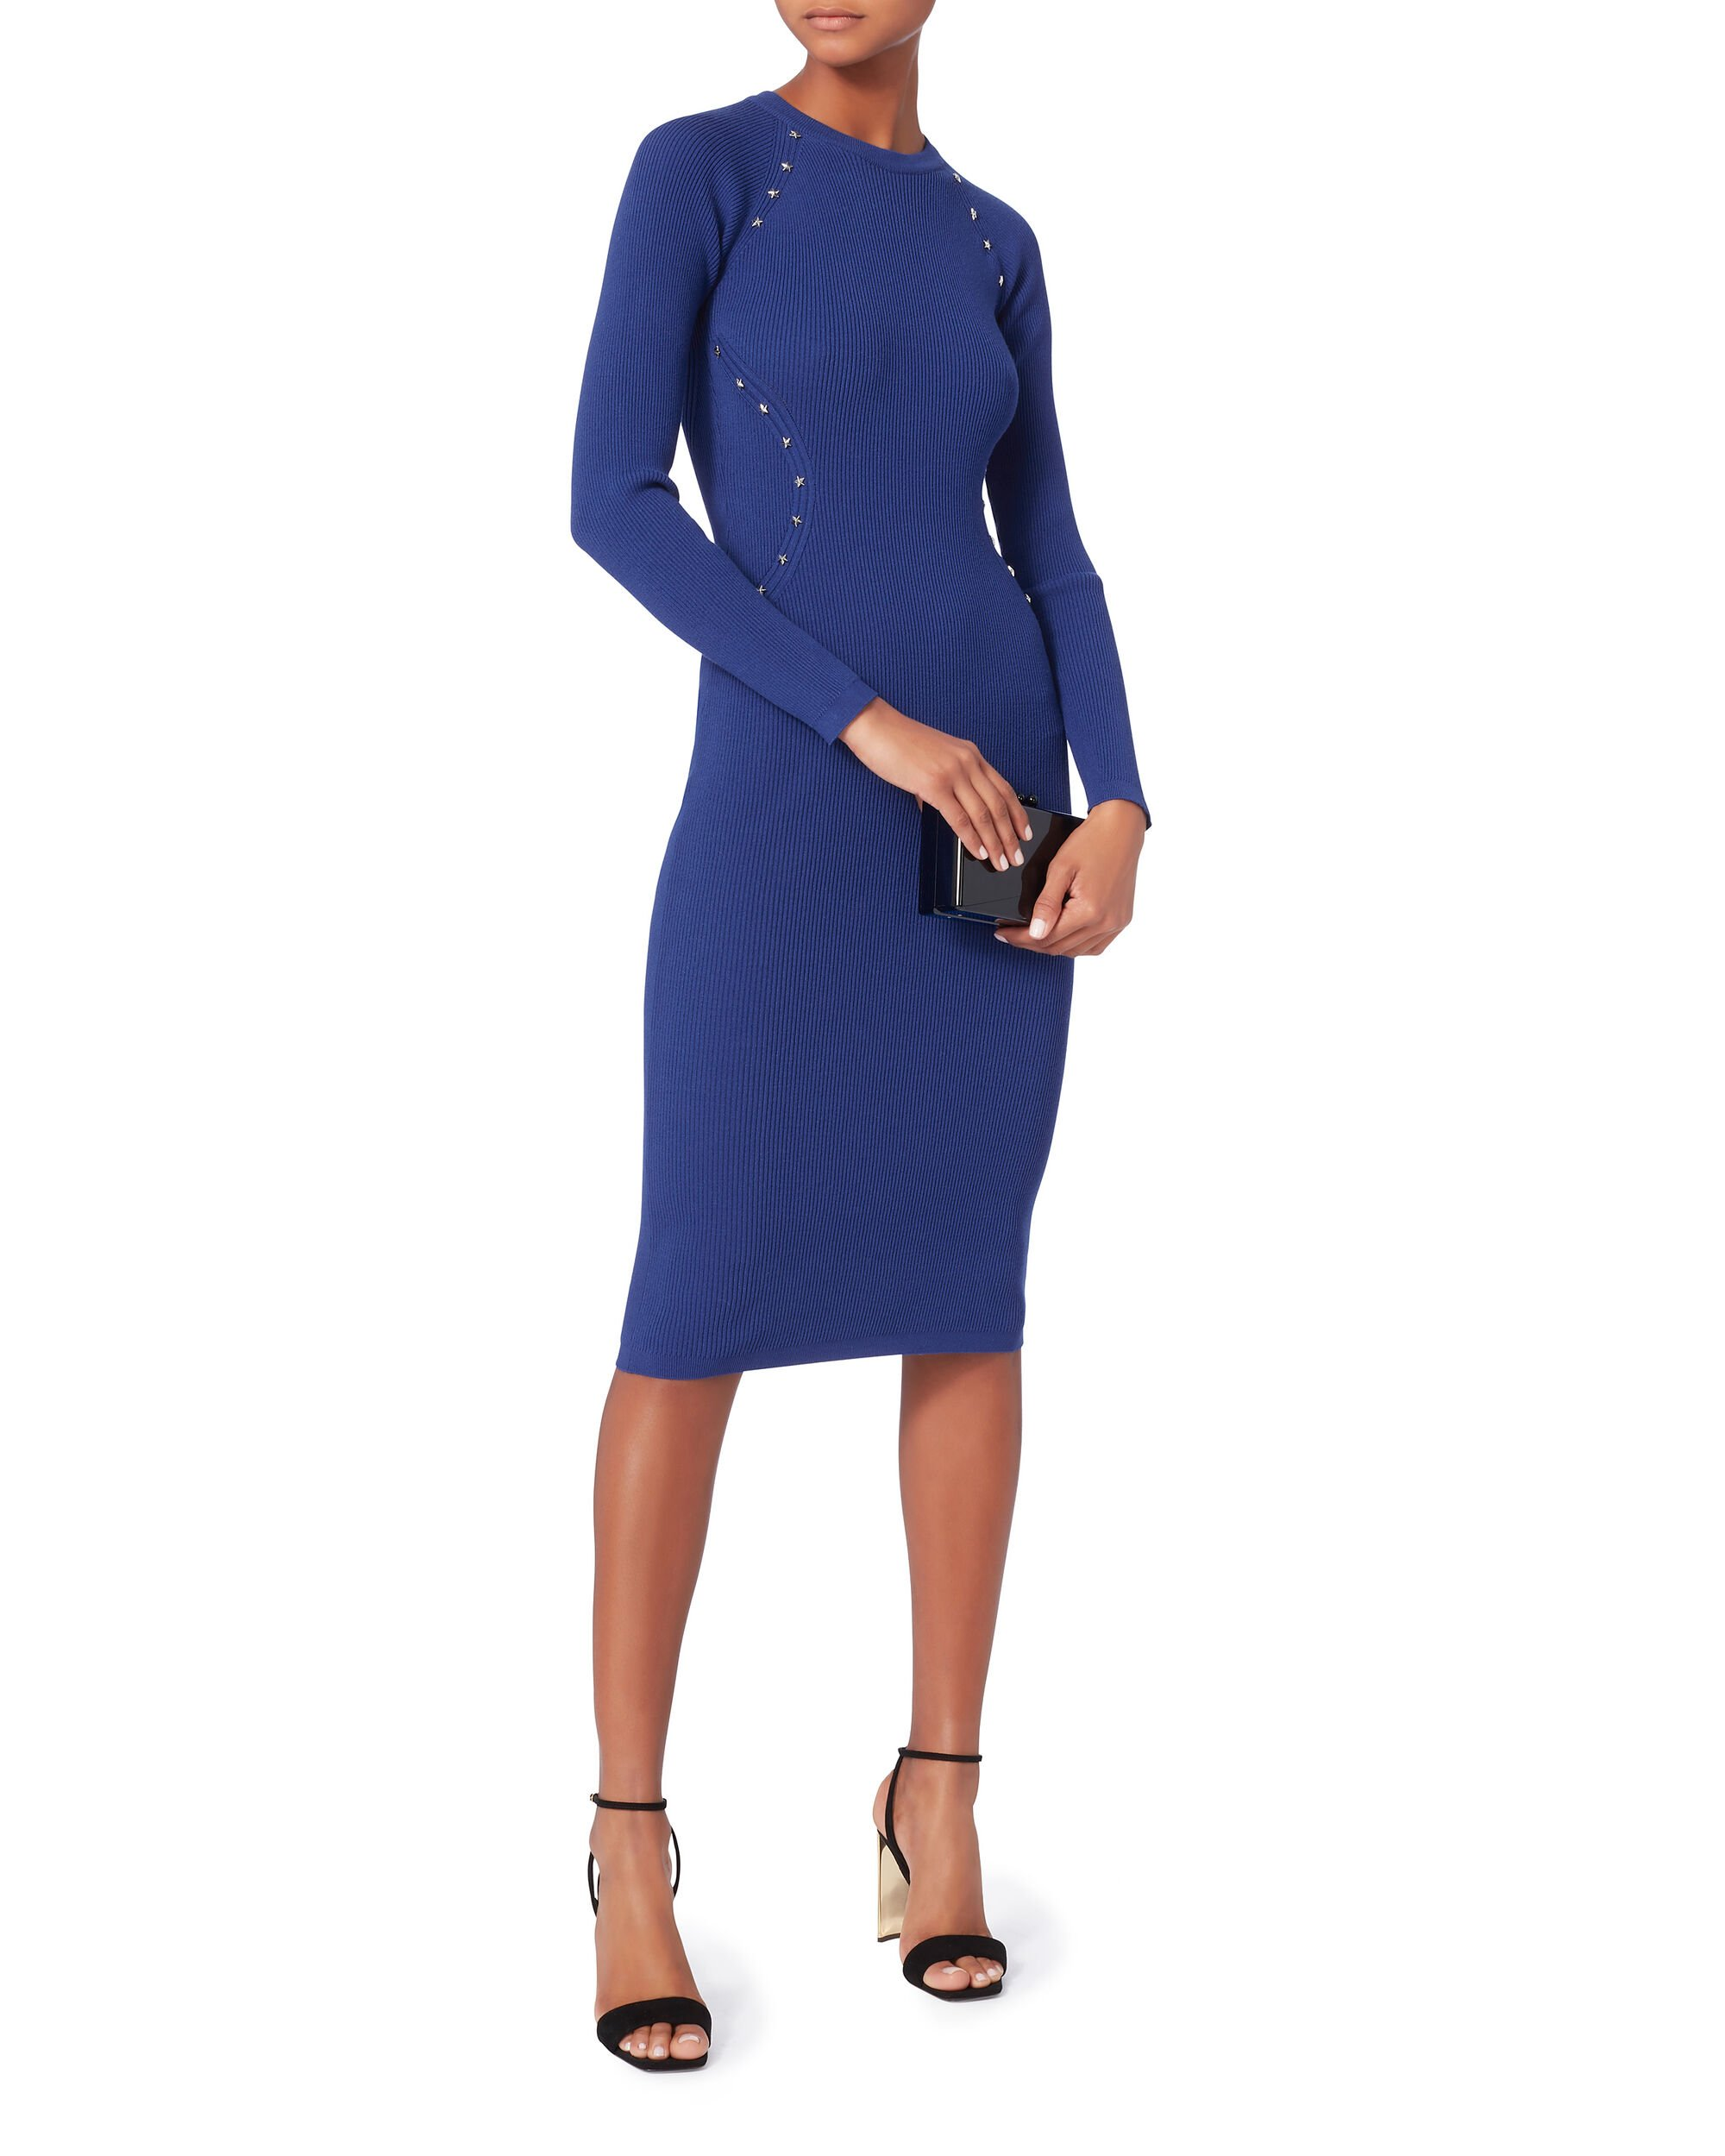 Star Ribbed Knit Dress, BLUE, hi-res